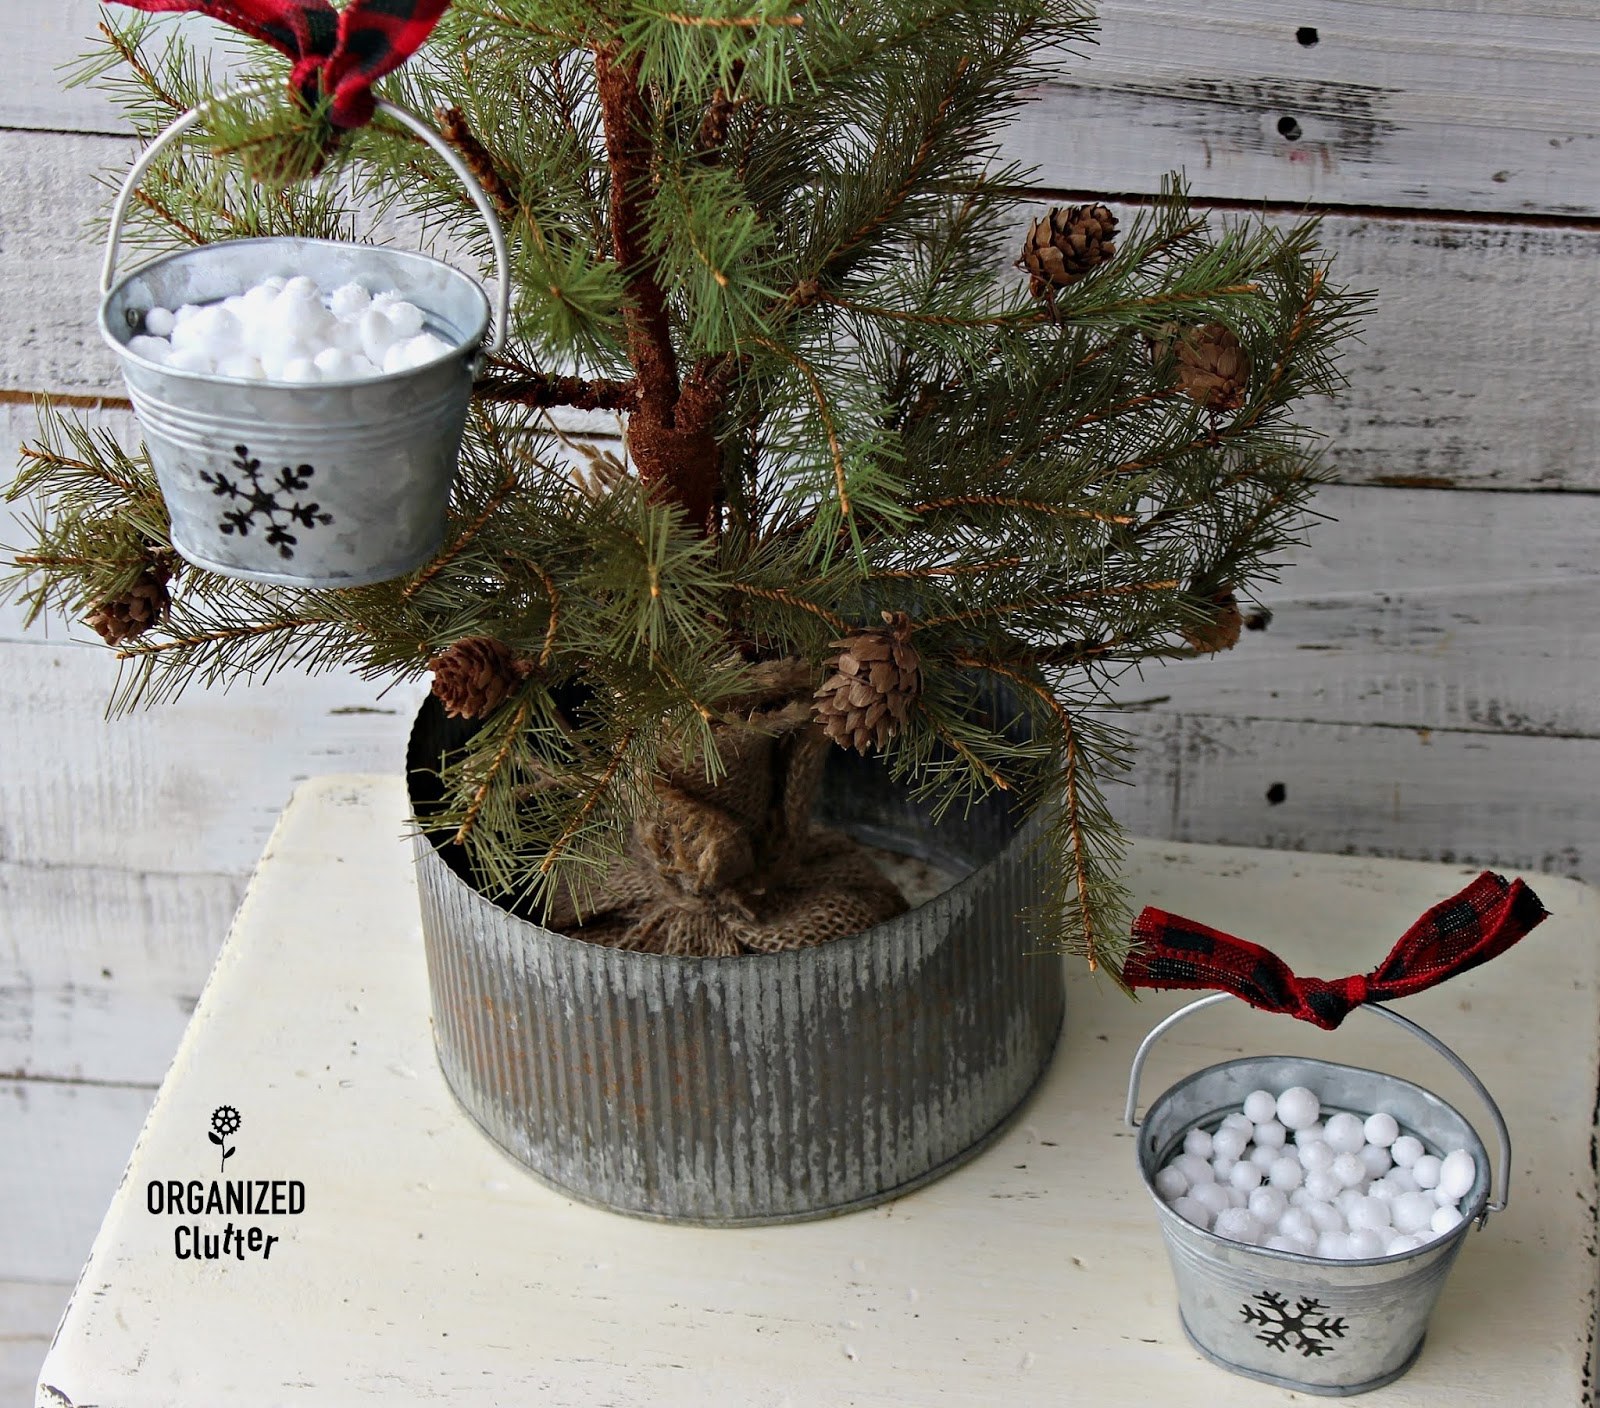 Hobby Lobby Farmhouse Christmas Crafting With Galvanized Pails Stencils Organized Clutter